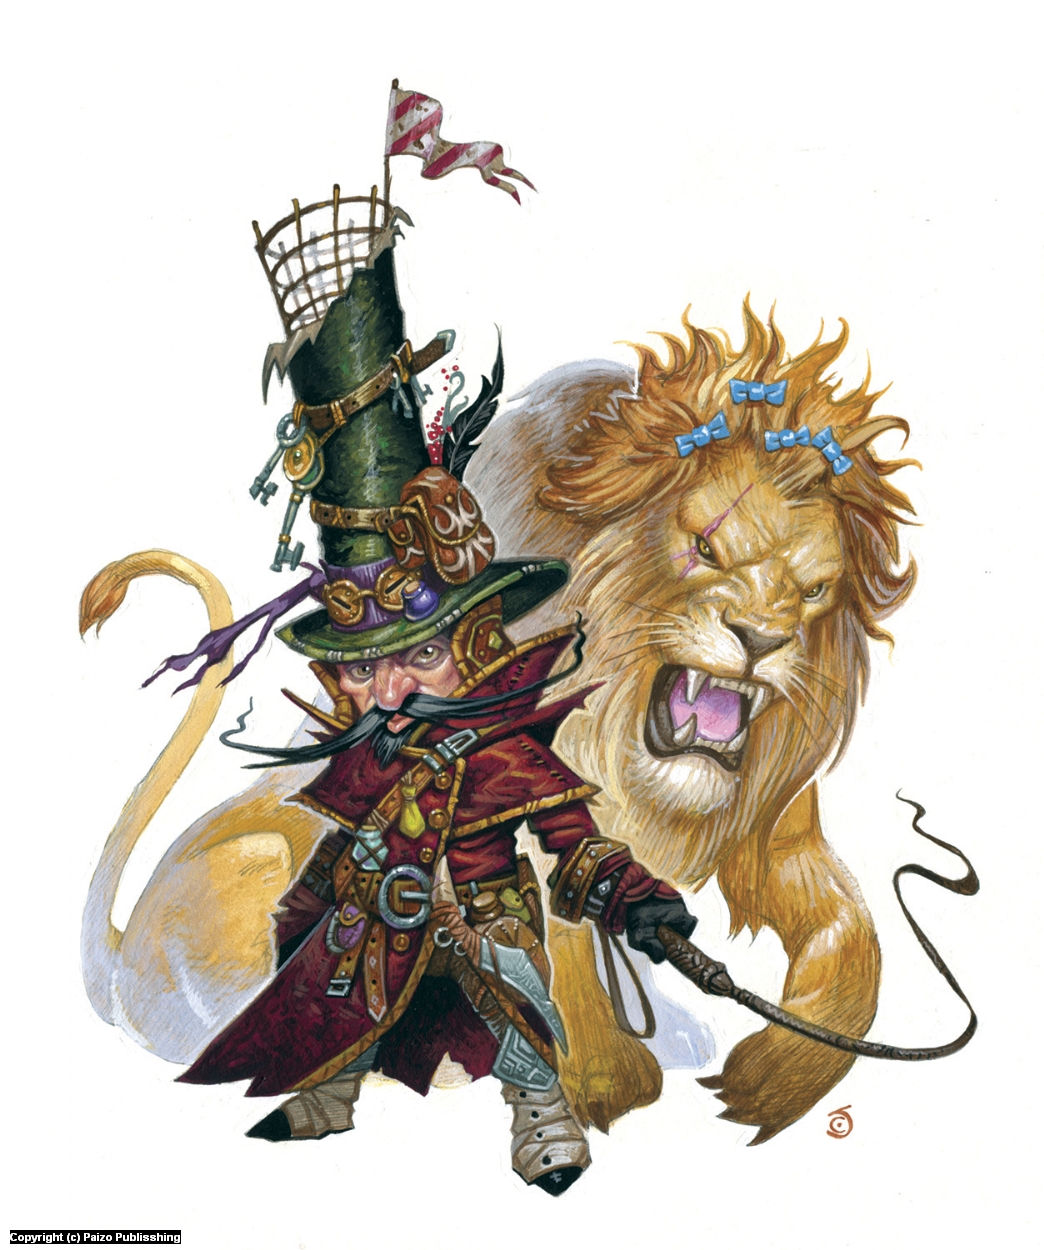 Yimni Zushergal, Lion Tamer Artwork by Chris Seaman